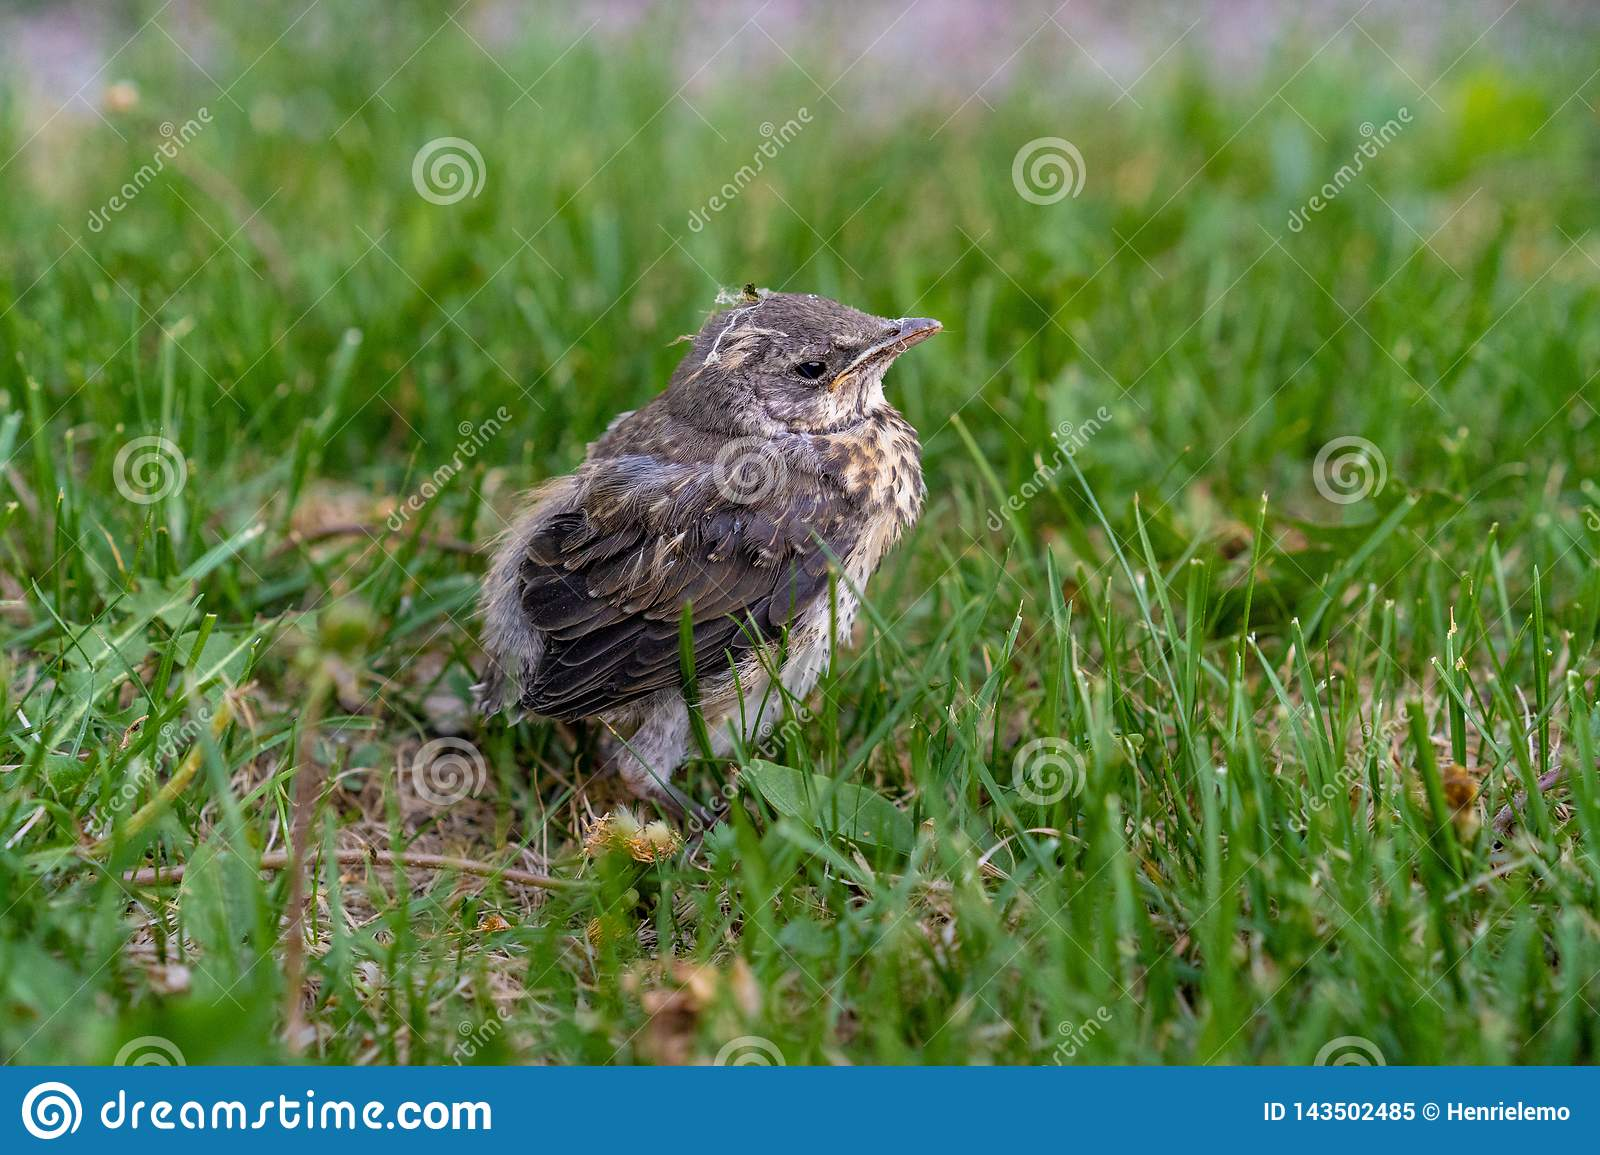 Abandoned bird on green grass looking for mother at Helsinki